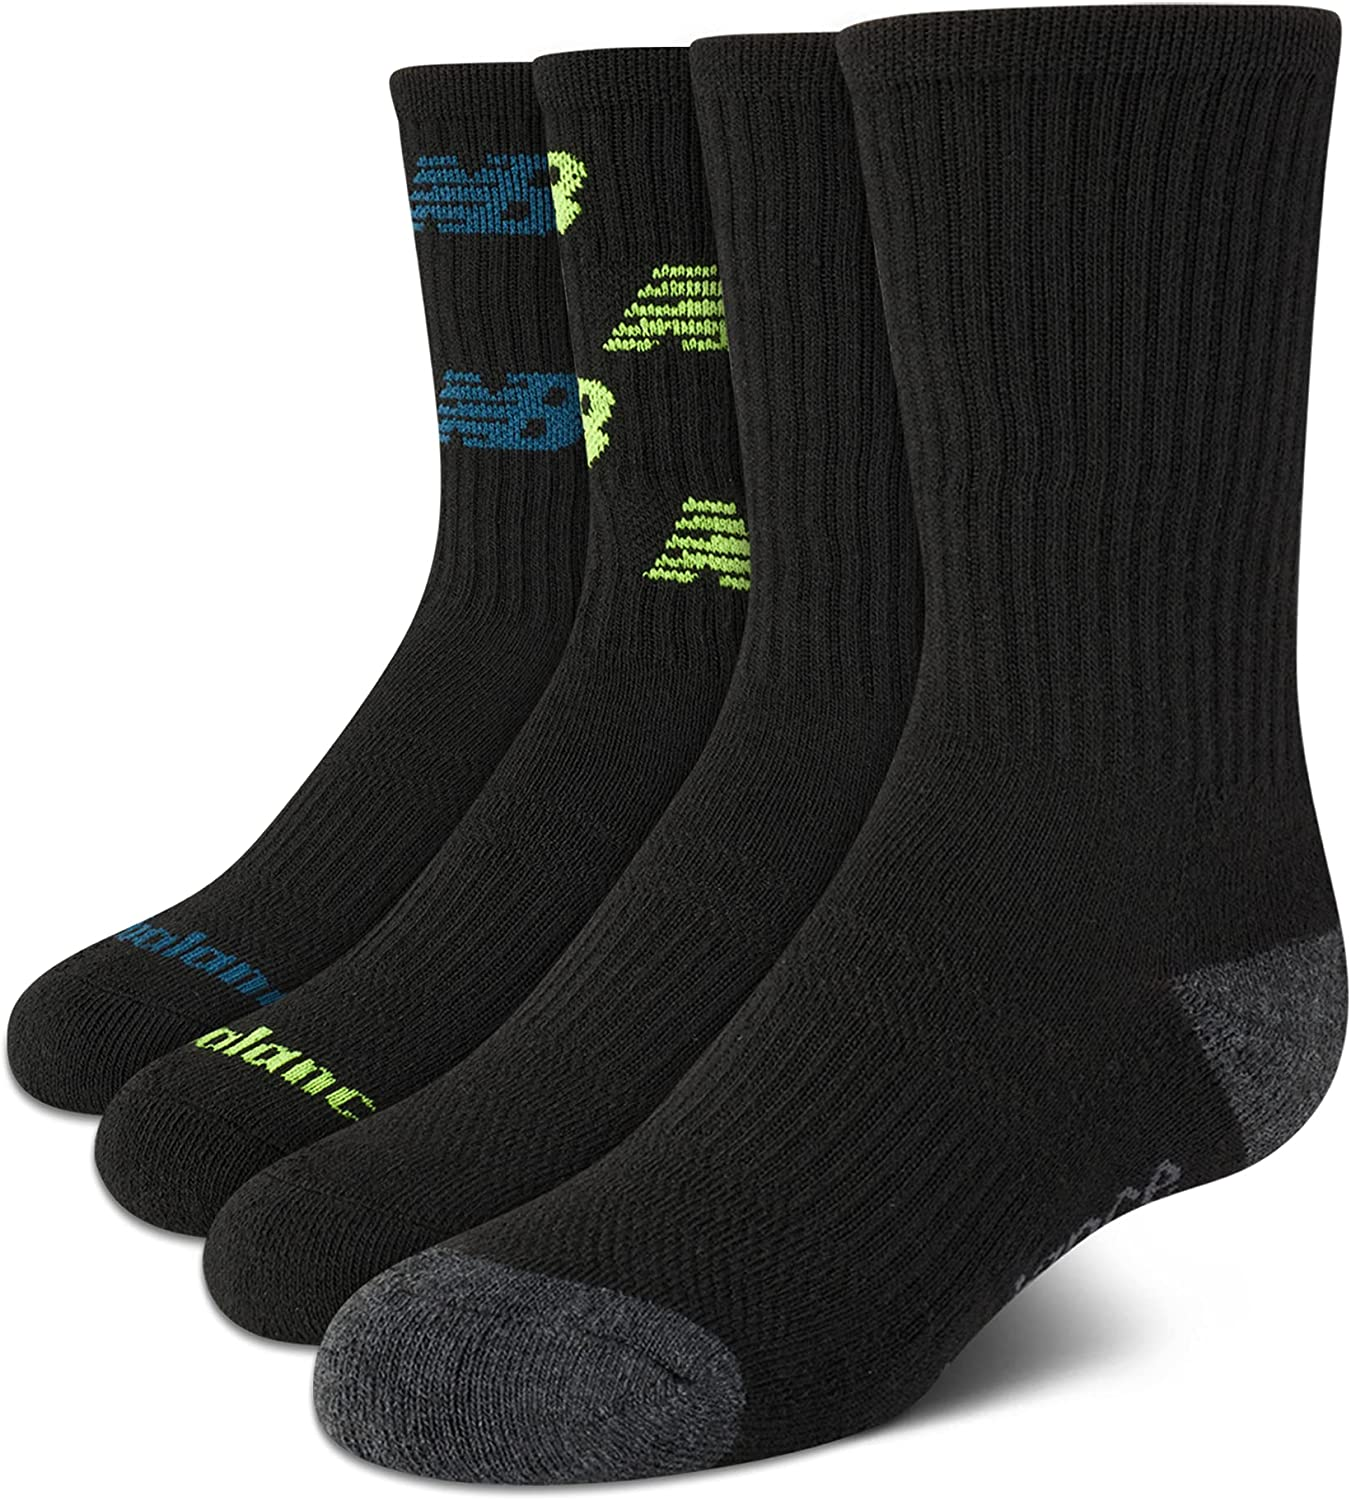 New Balance Boys' Cushioned Crew Socks with Reinforced Heel and Toe (4 Pack), Black, Medium/Little Kid/ Shoe Size: 8.5-2